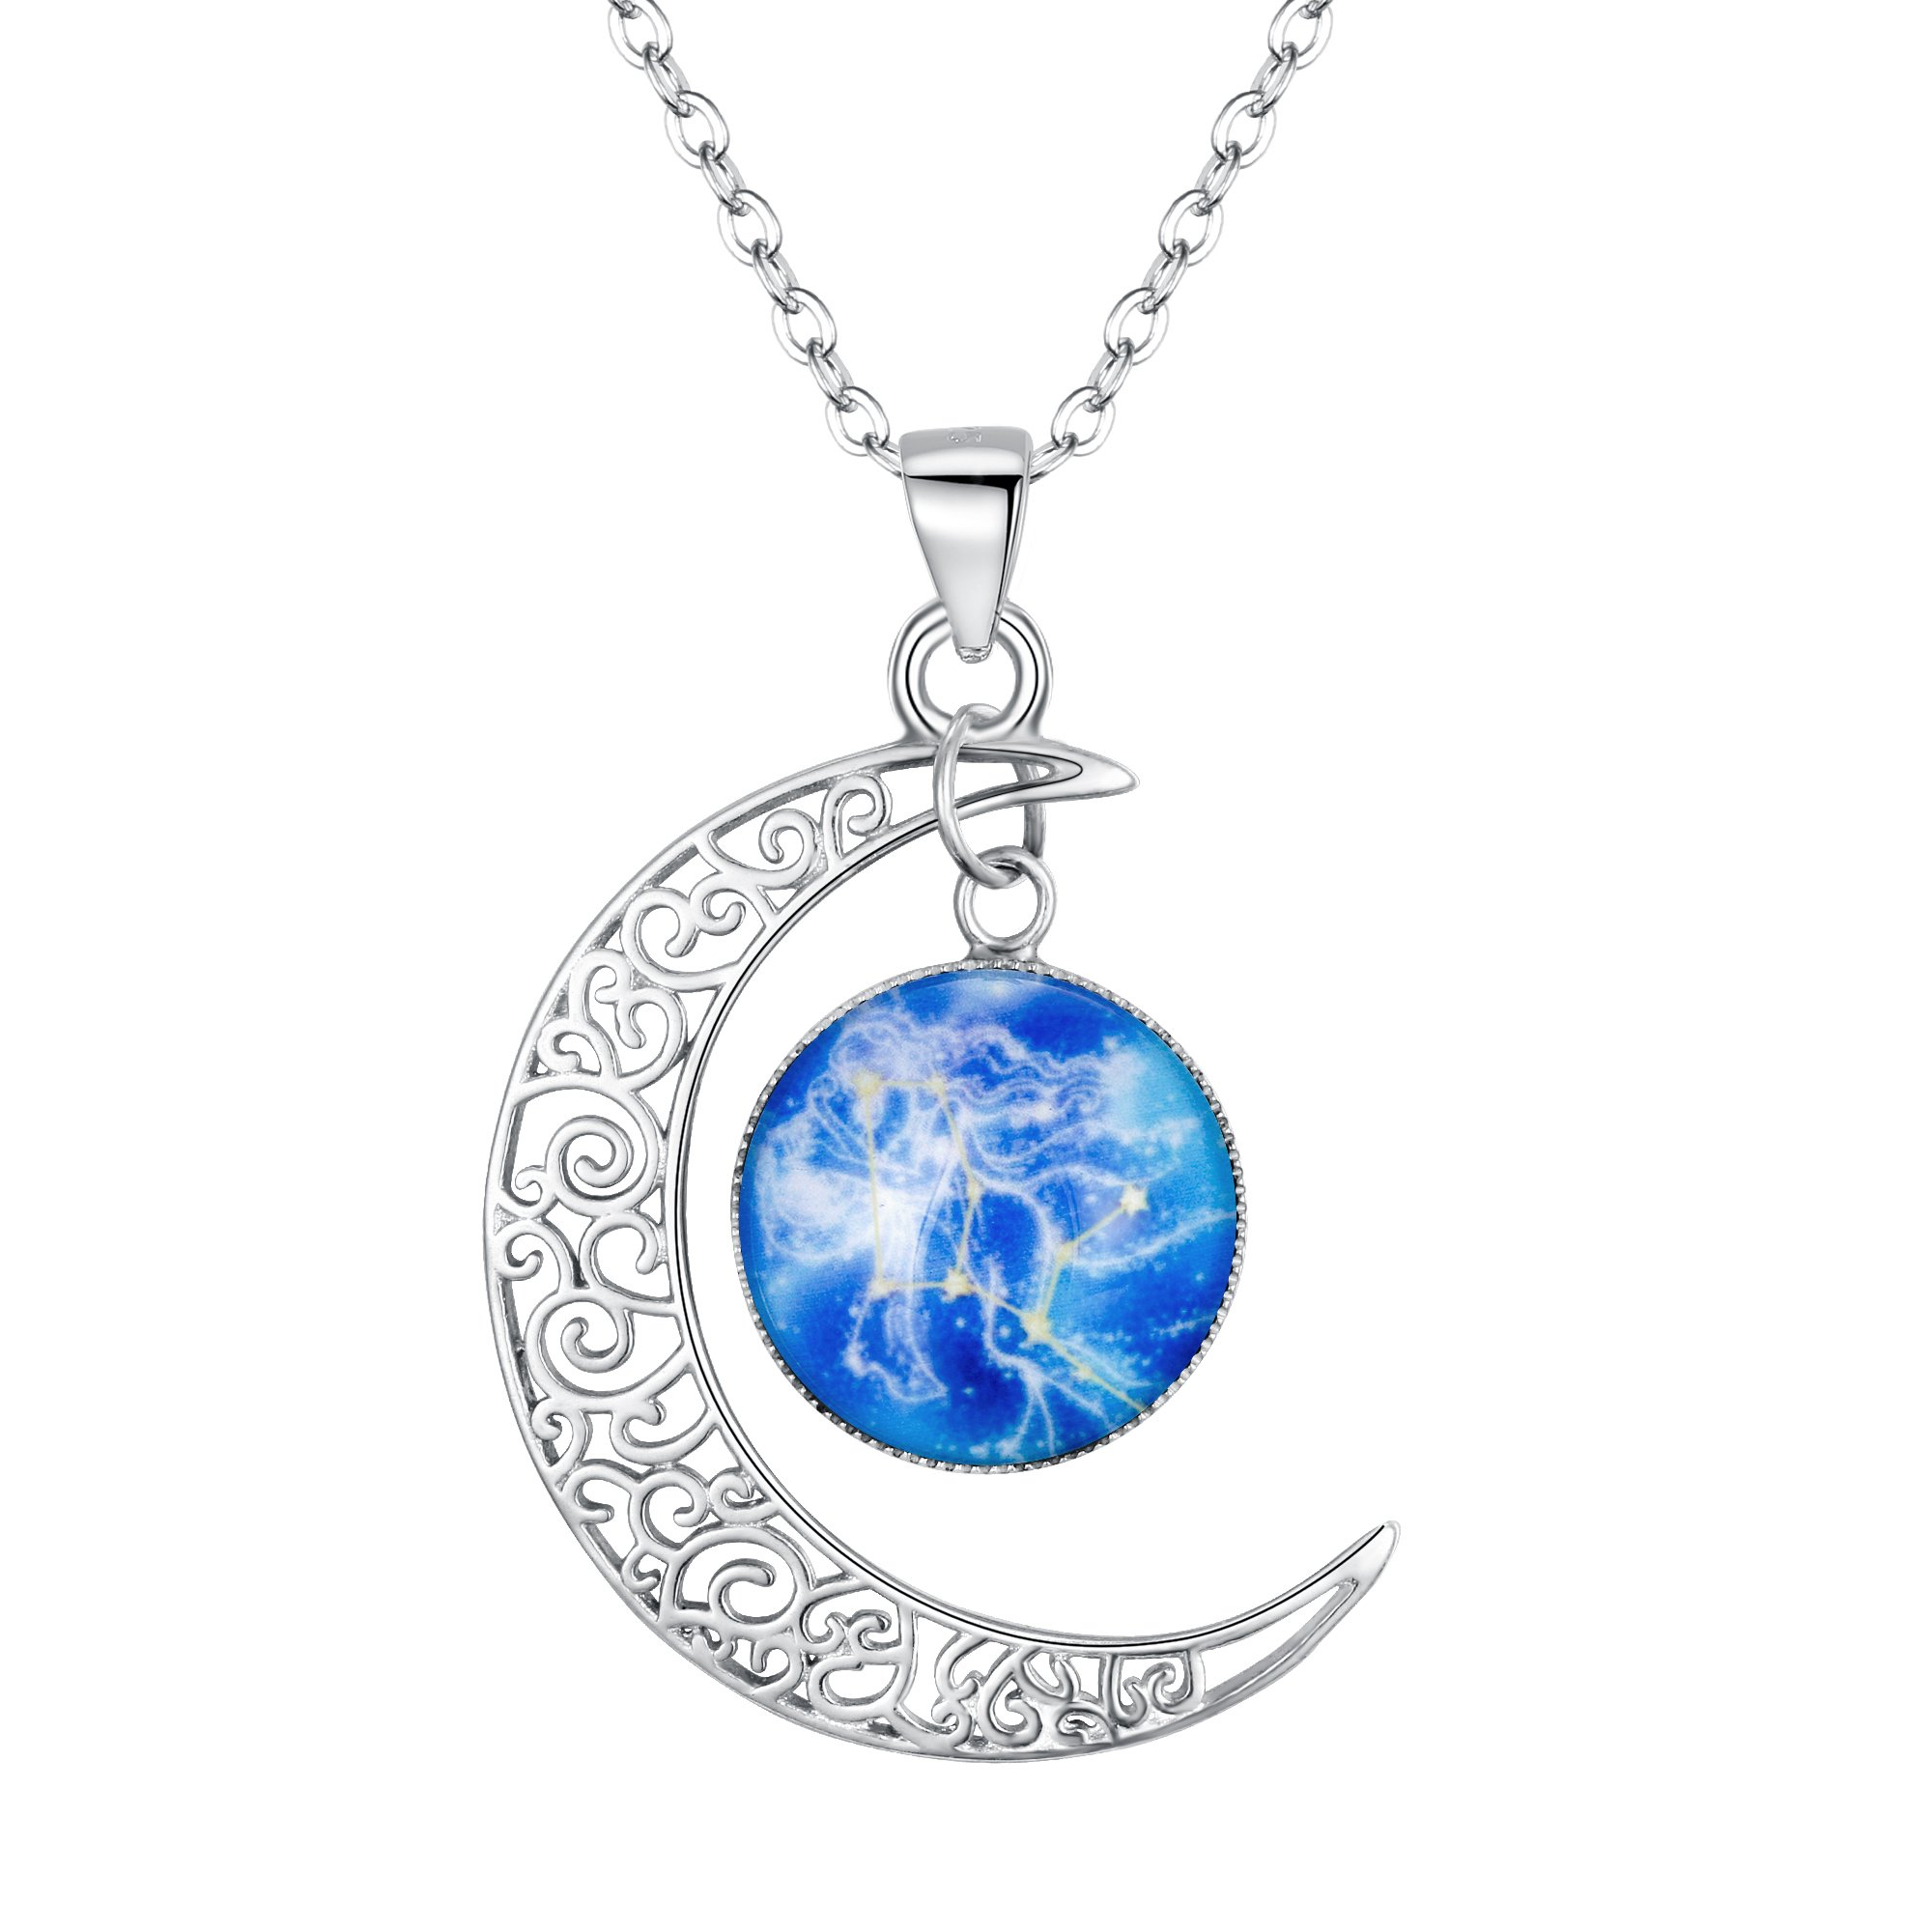 BriLove 925 Sterling Silver Necklace for Women -''Virgo'' Galaxy Constellation Zodiac Horoscope Astrology 12 Crescent Moon Glass Bead Pendant Necklace